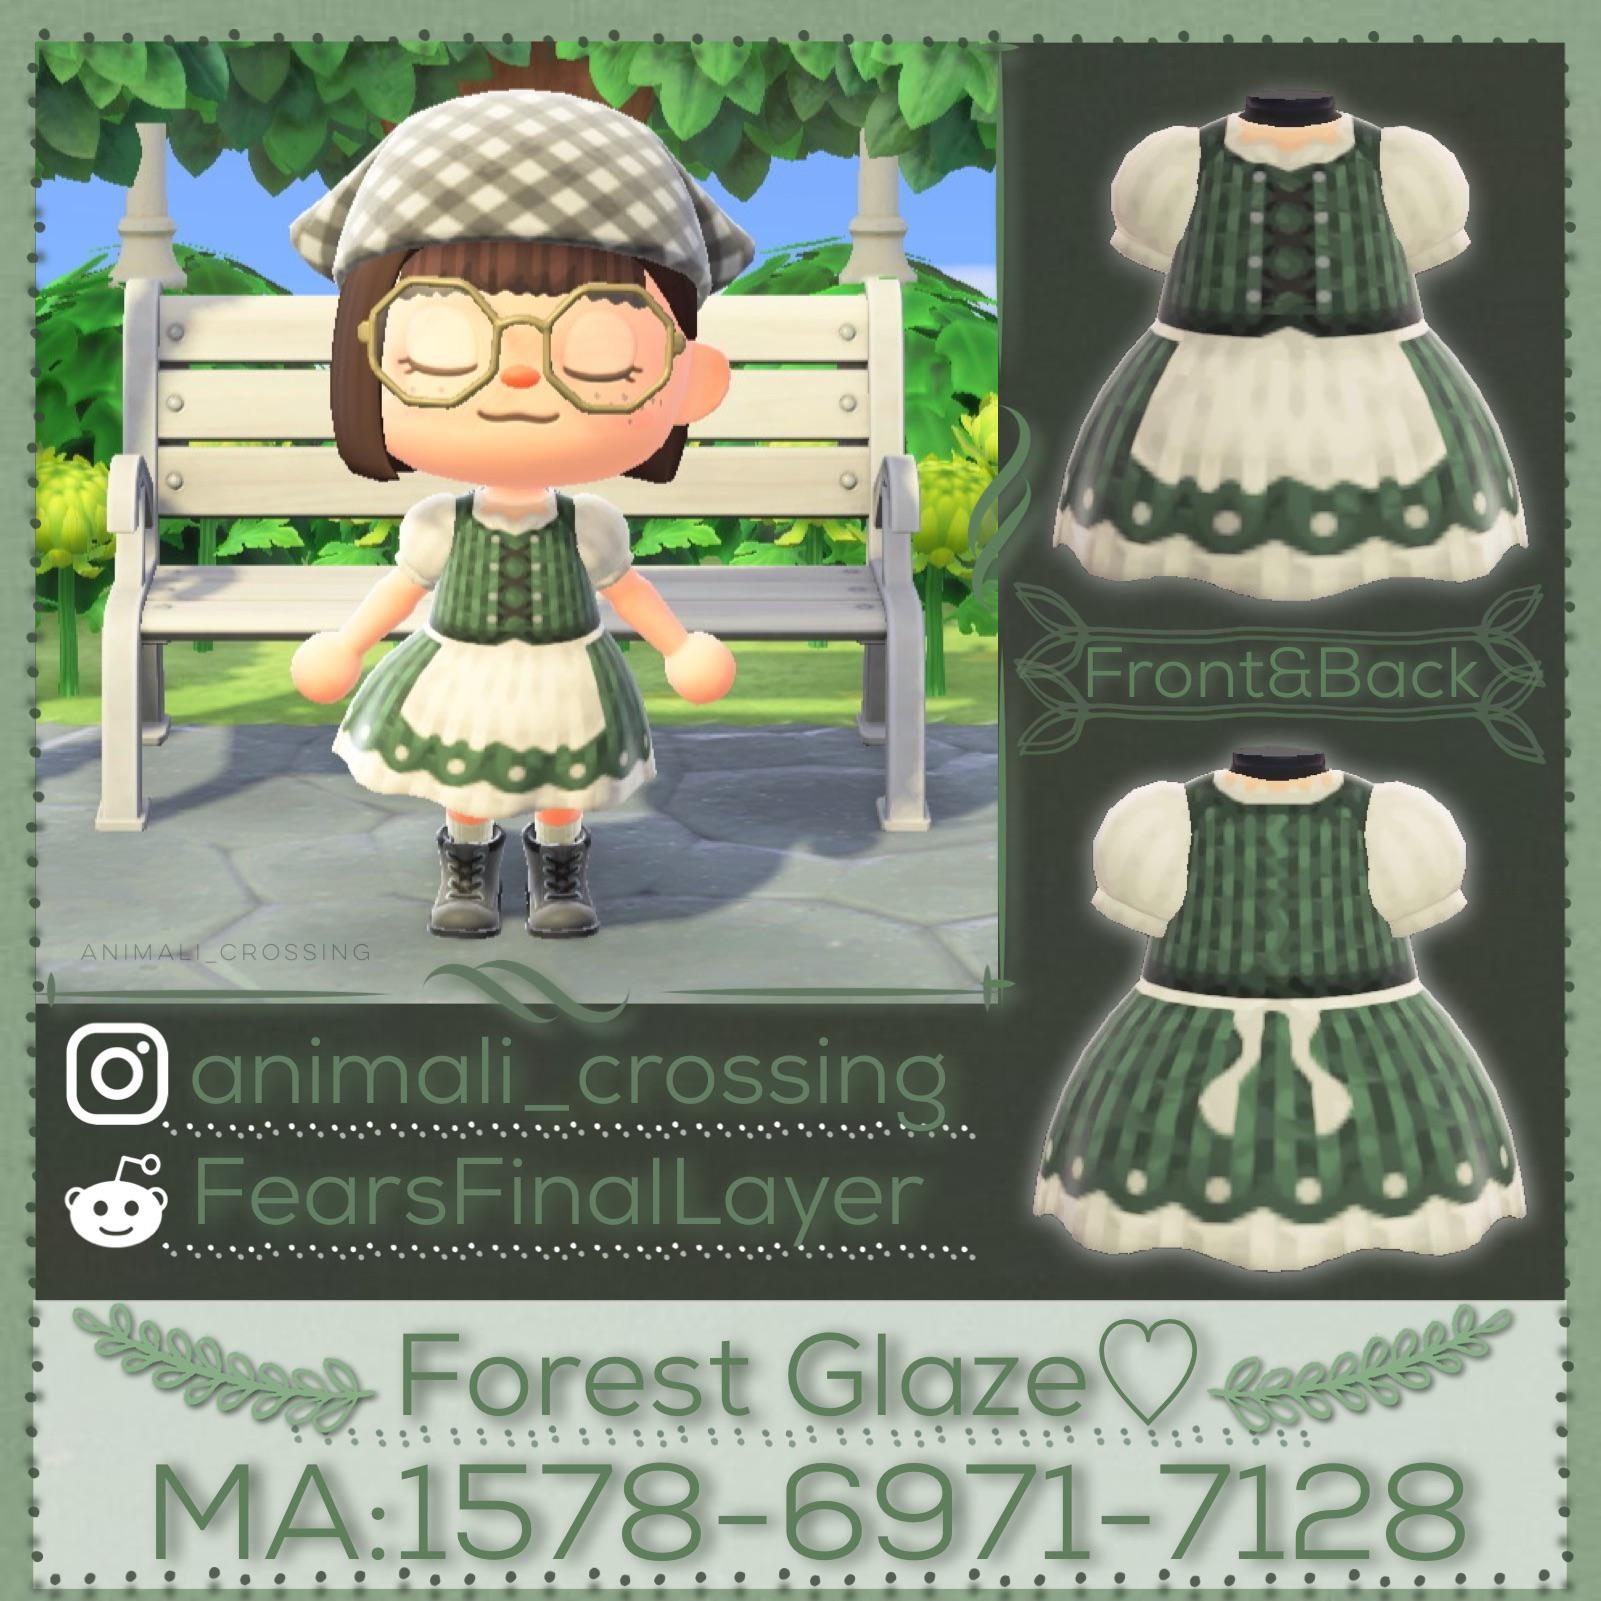 Did someone ask for a cottage-core outfit with an A-Prawn🦐? No? My crustacean puns may not fit, but Forest Glaze will as it's in all skin tones! As always, enjoy~<3